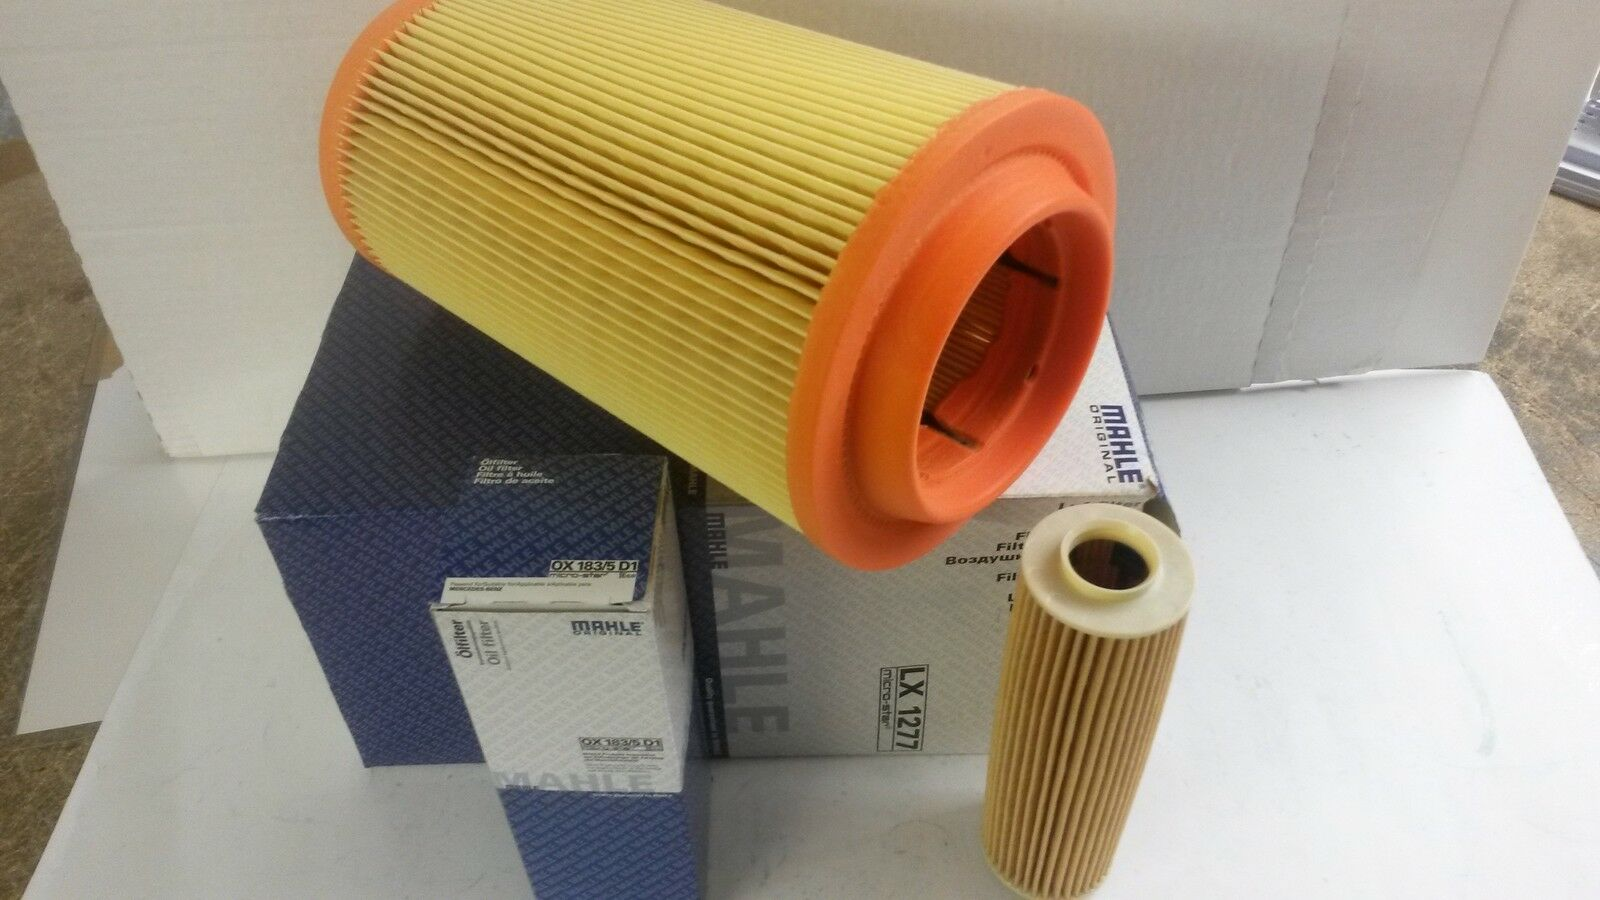 Mercedes C180 C200 C230 Kompressor Mahle Oil Air Filter Service Kit Fuel 1 Of 1only Available